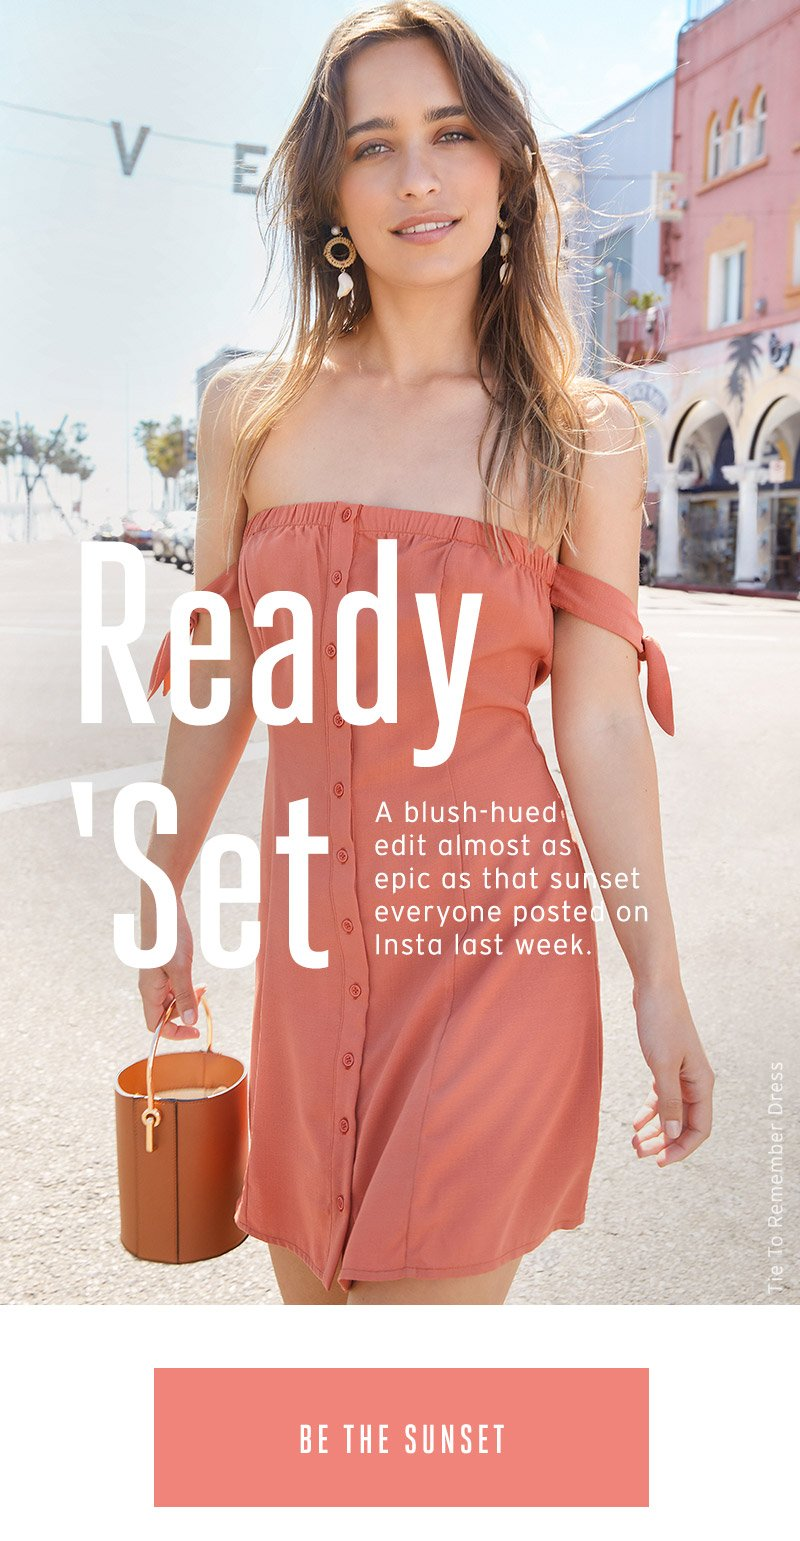 Ready 'Set. Be the sunset.